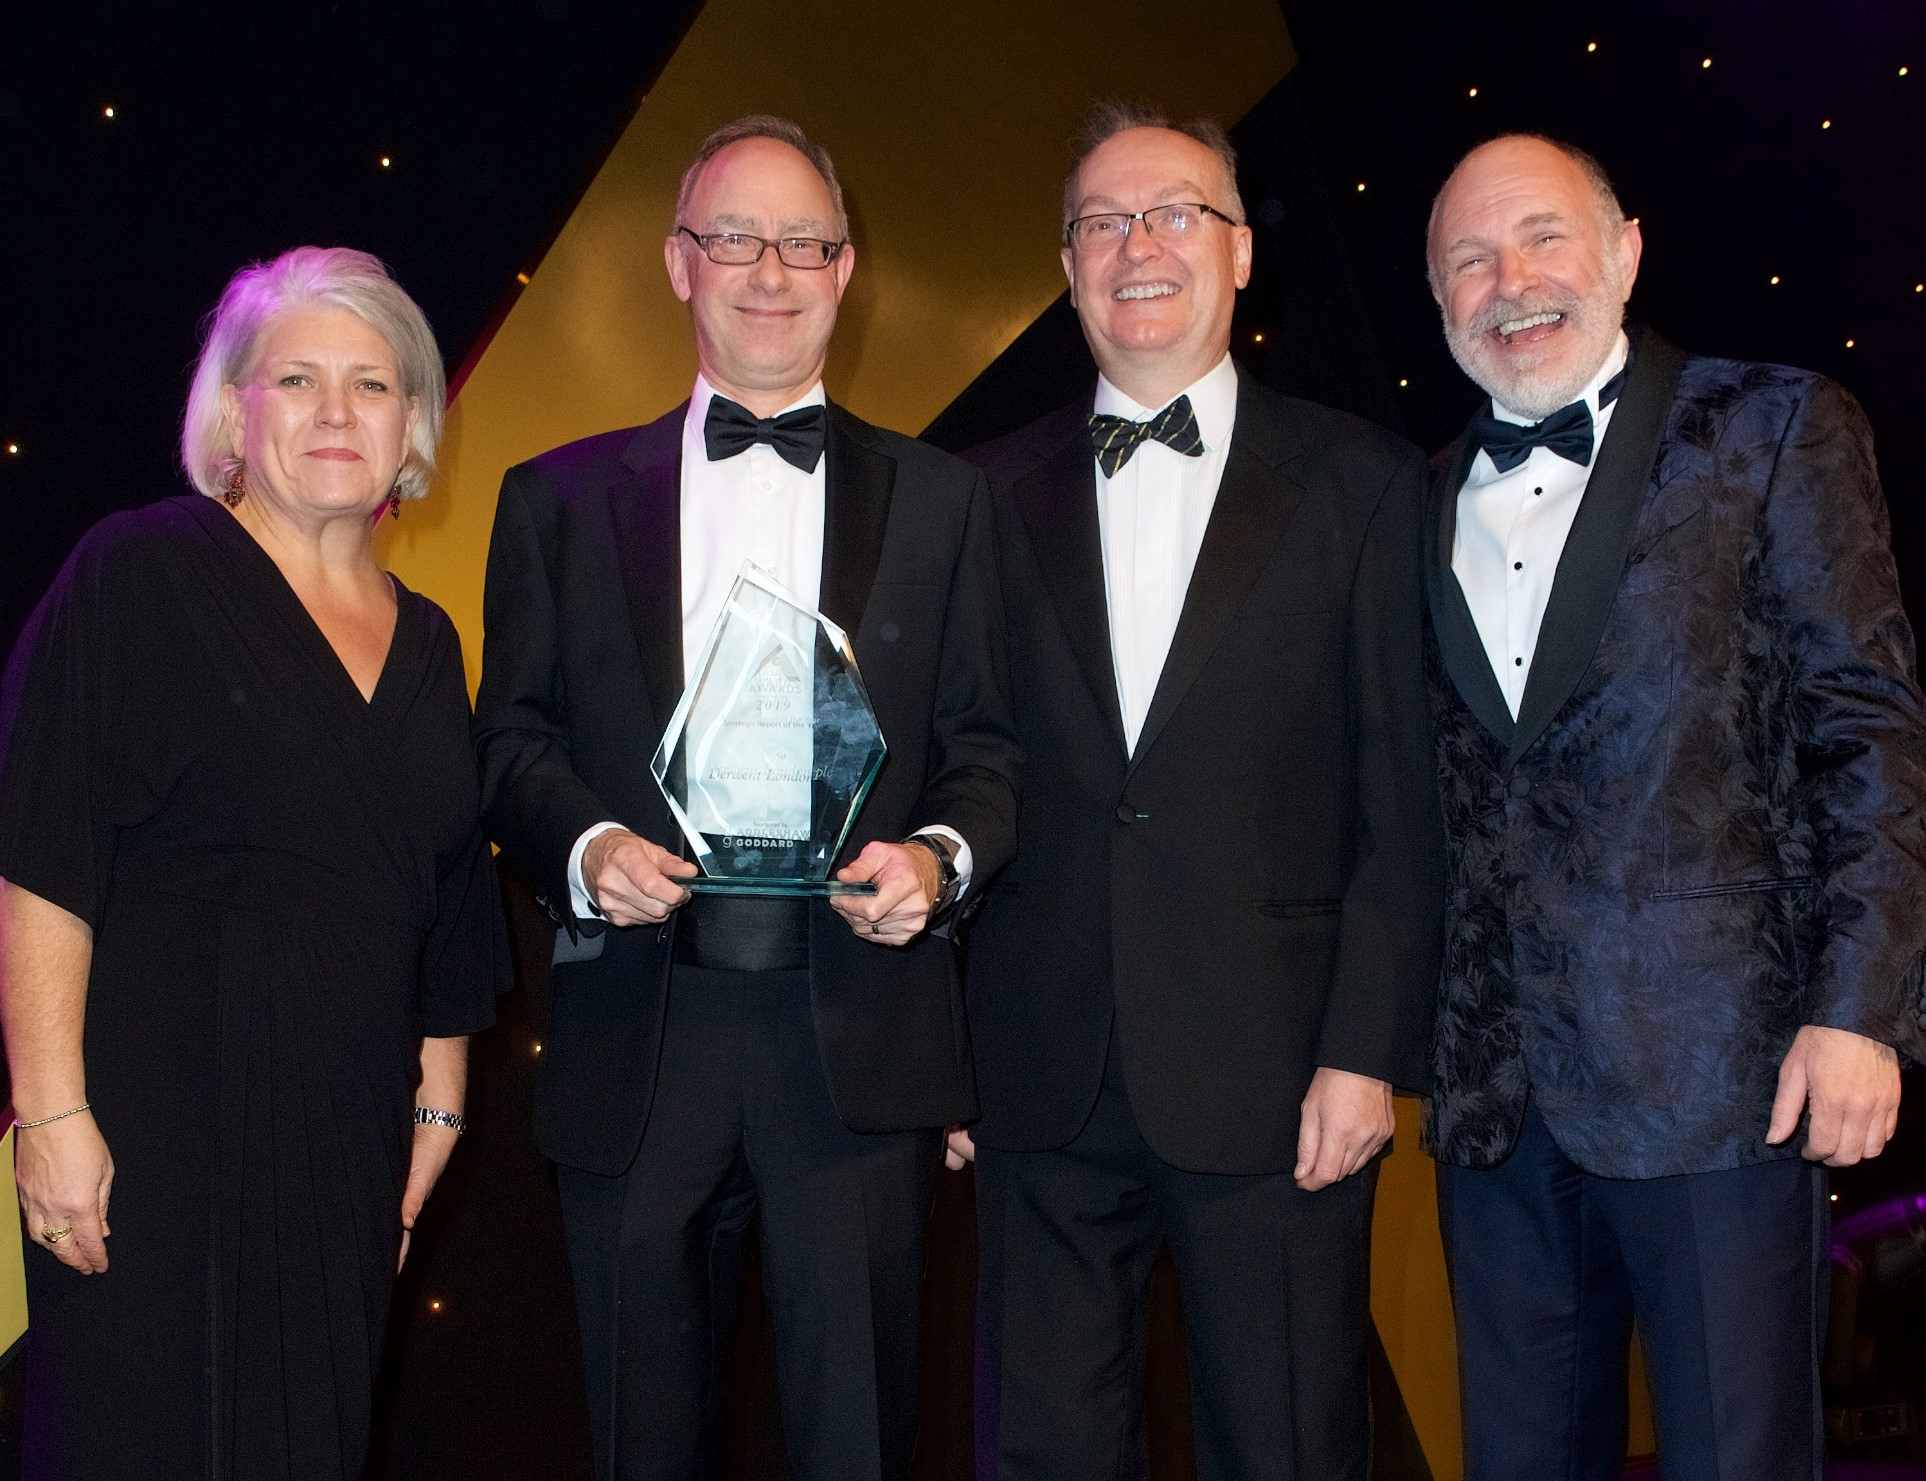 ICSA Awards -Strategic Report of the Year